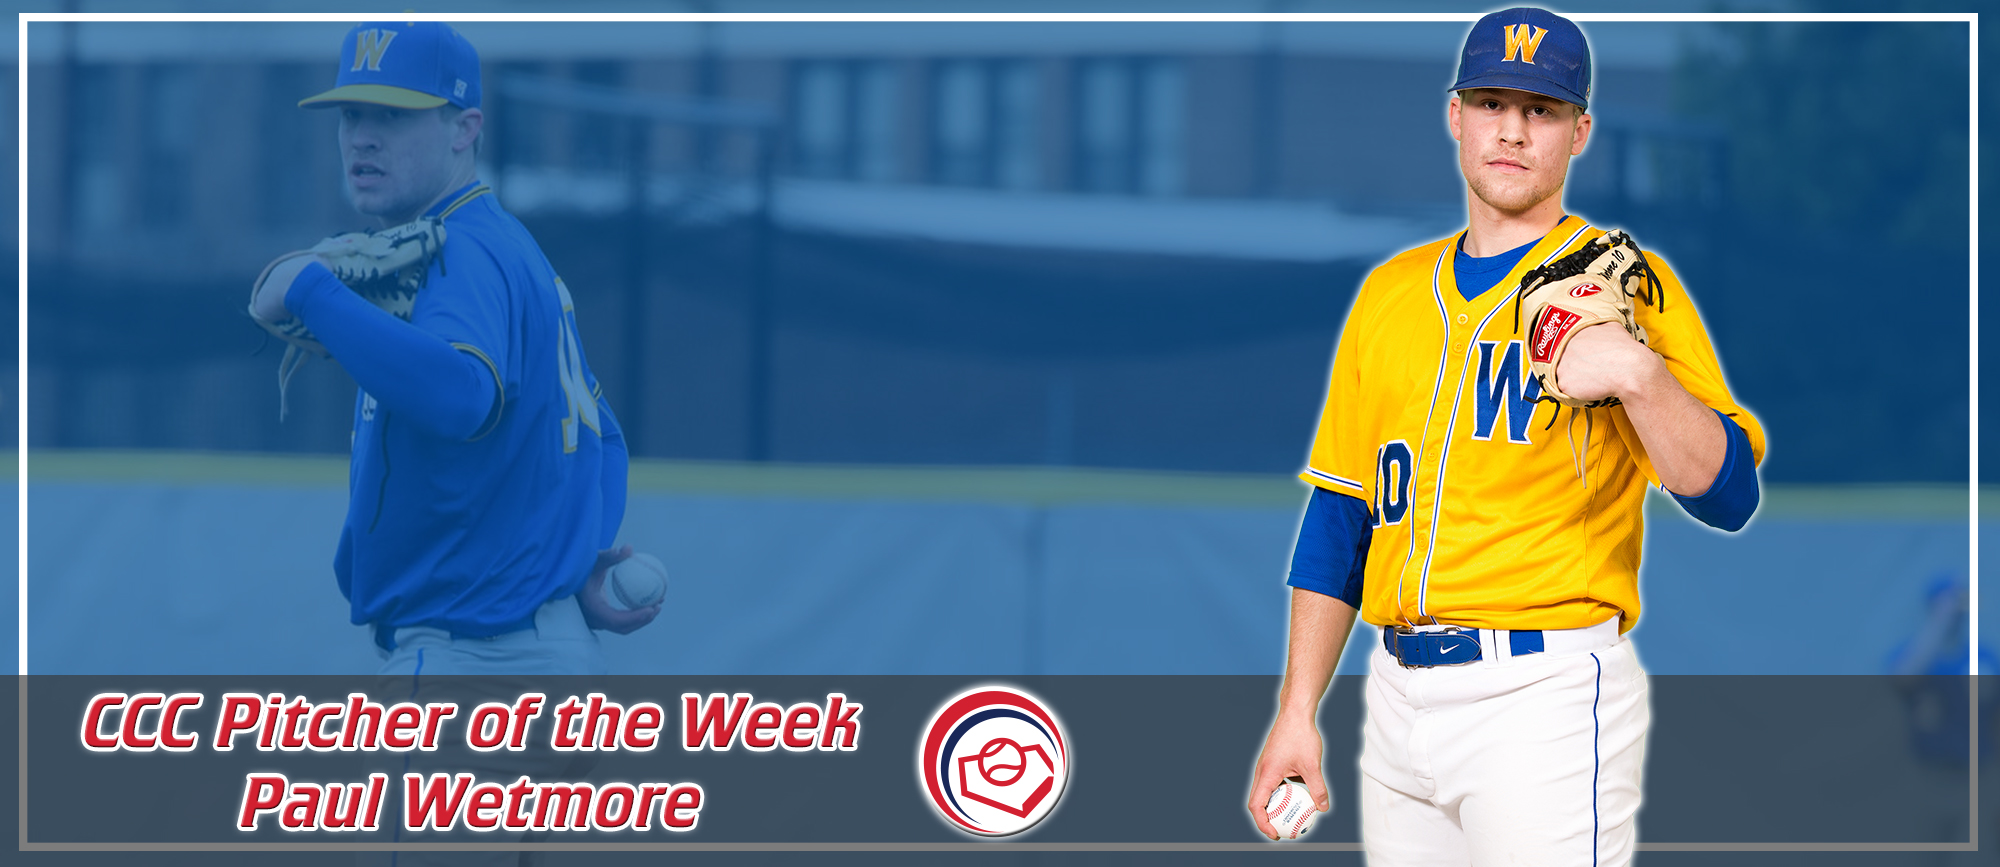 Paul Wetmore Named CCC Pitcher of the Week